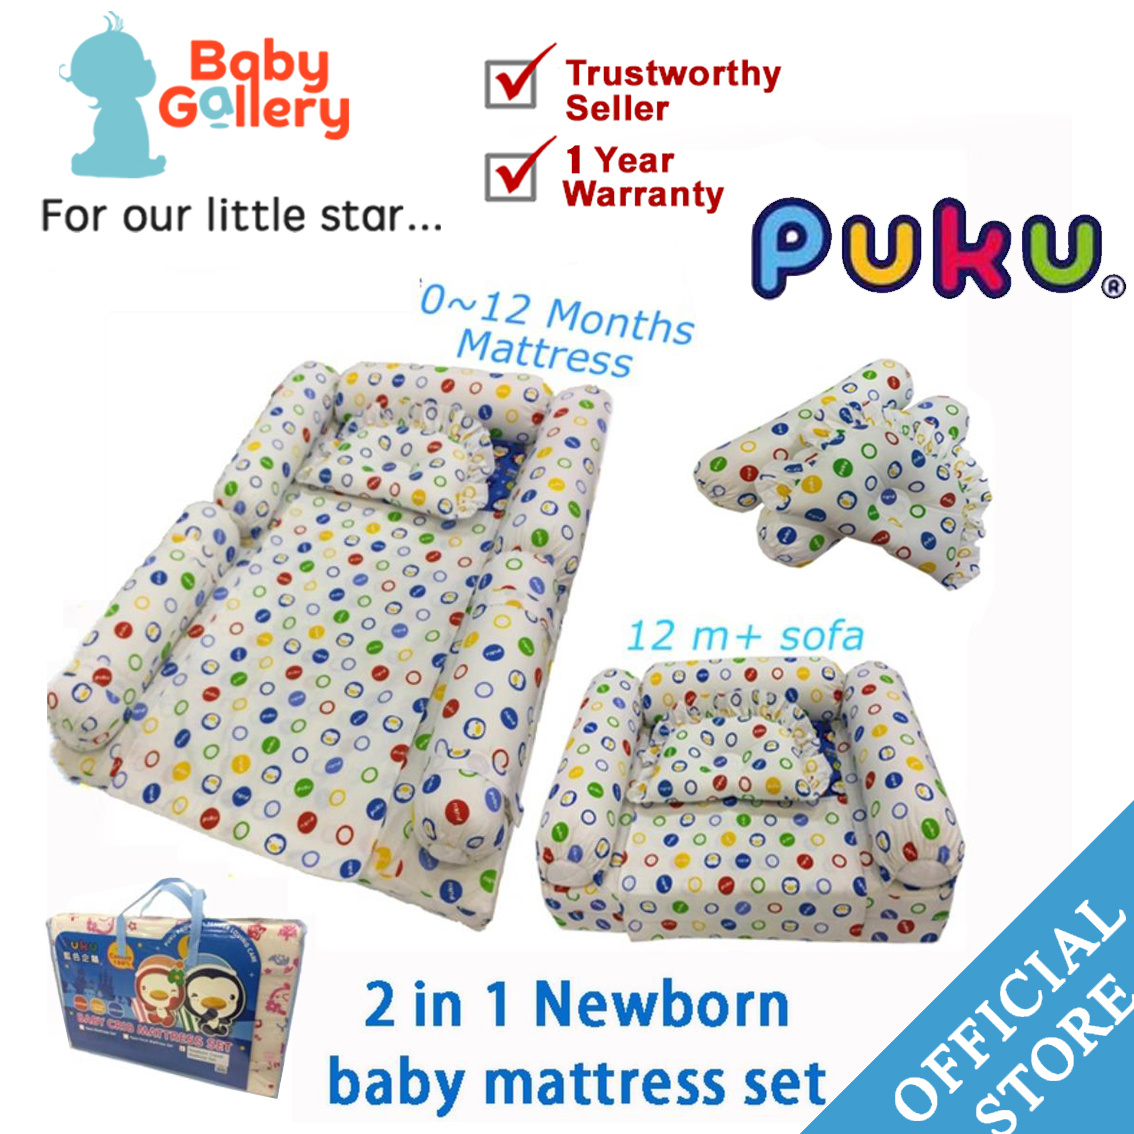 Toddler Mattress Vs Baby Mattress Puku Promotion Itemspuku 2 In 1 Newborn Baby Mattress Set 4 Bolster 1 Pillow Children Sofa